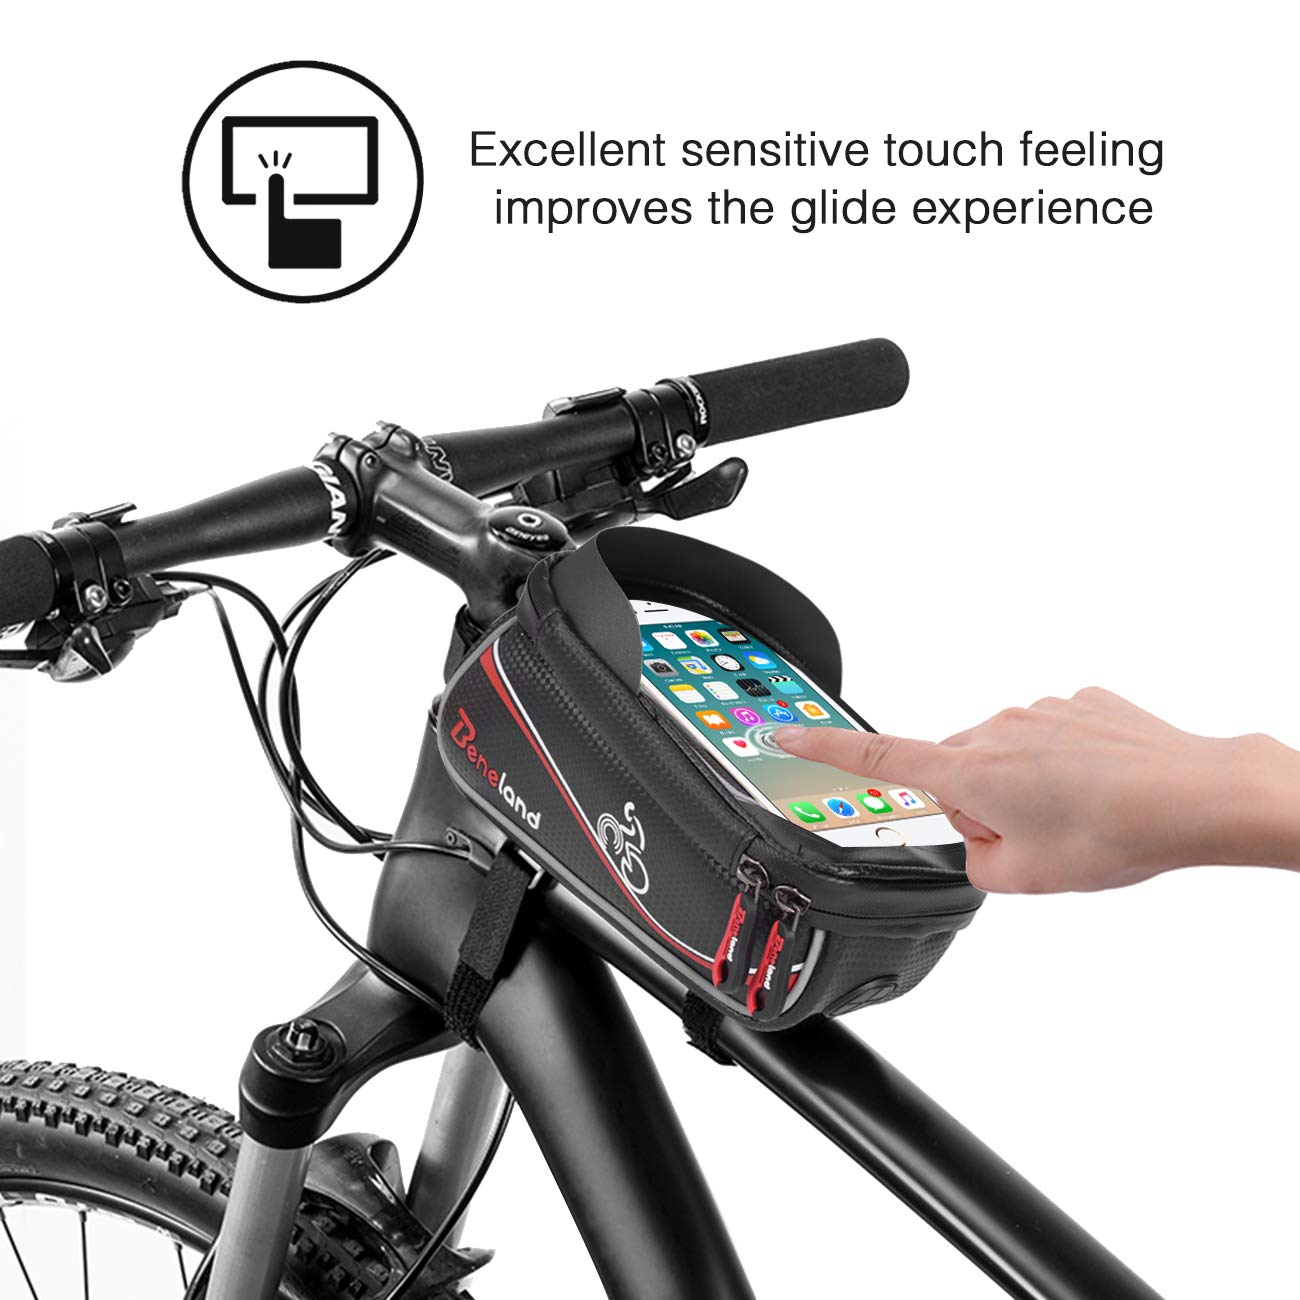 Bike Bag, Frame Bike Bag with Waterproof Touch Screen Phone Holder Case for iPhone X 8 7 6s 6 plus 5s 5/Samsung Galaxy s7 s6 note 7 Cellphone Below 6.0 Inch by Beneland (Image #5)